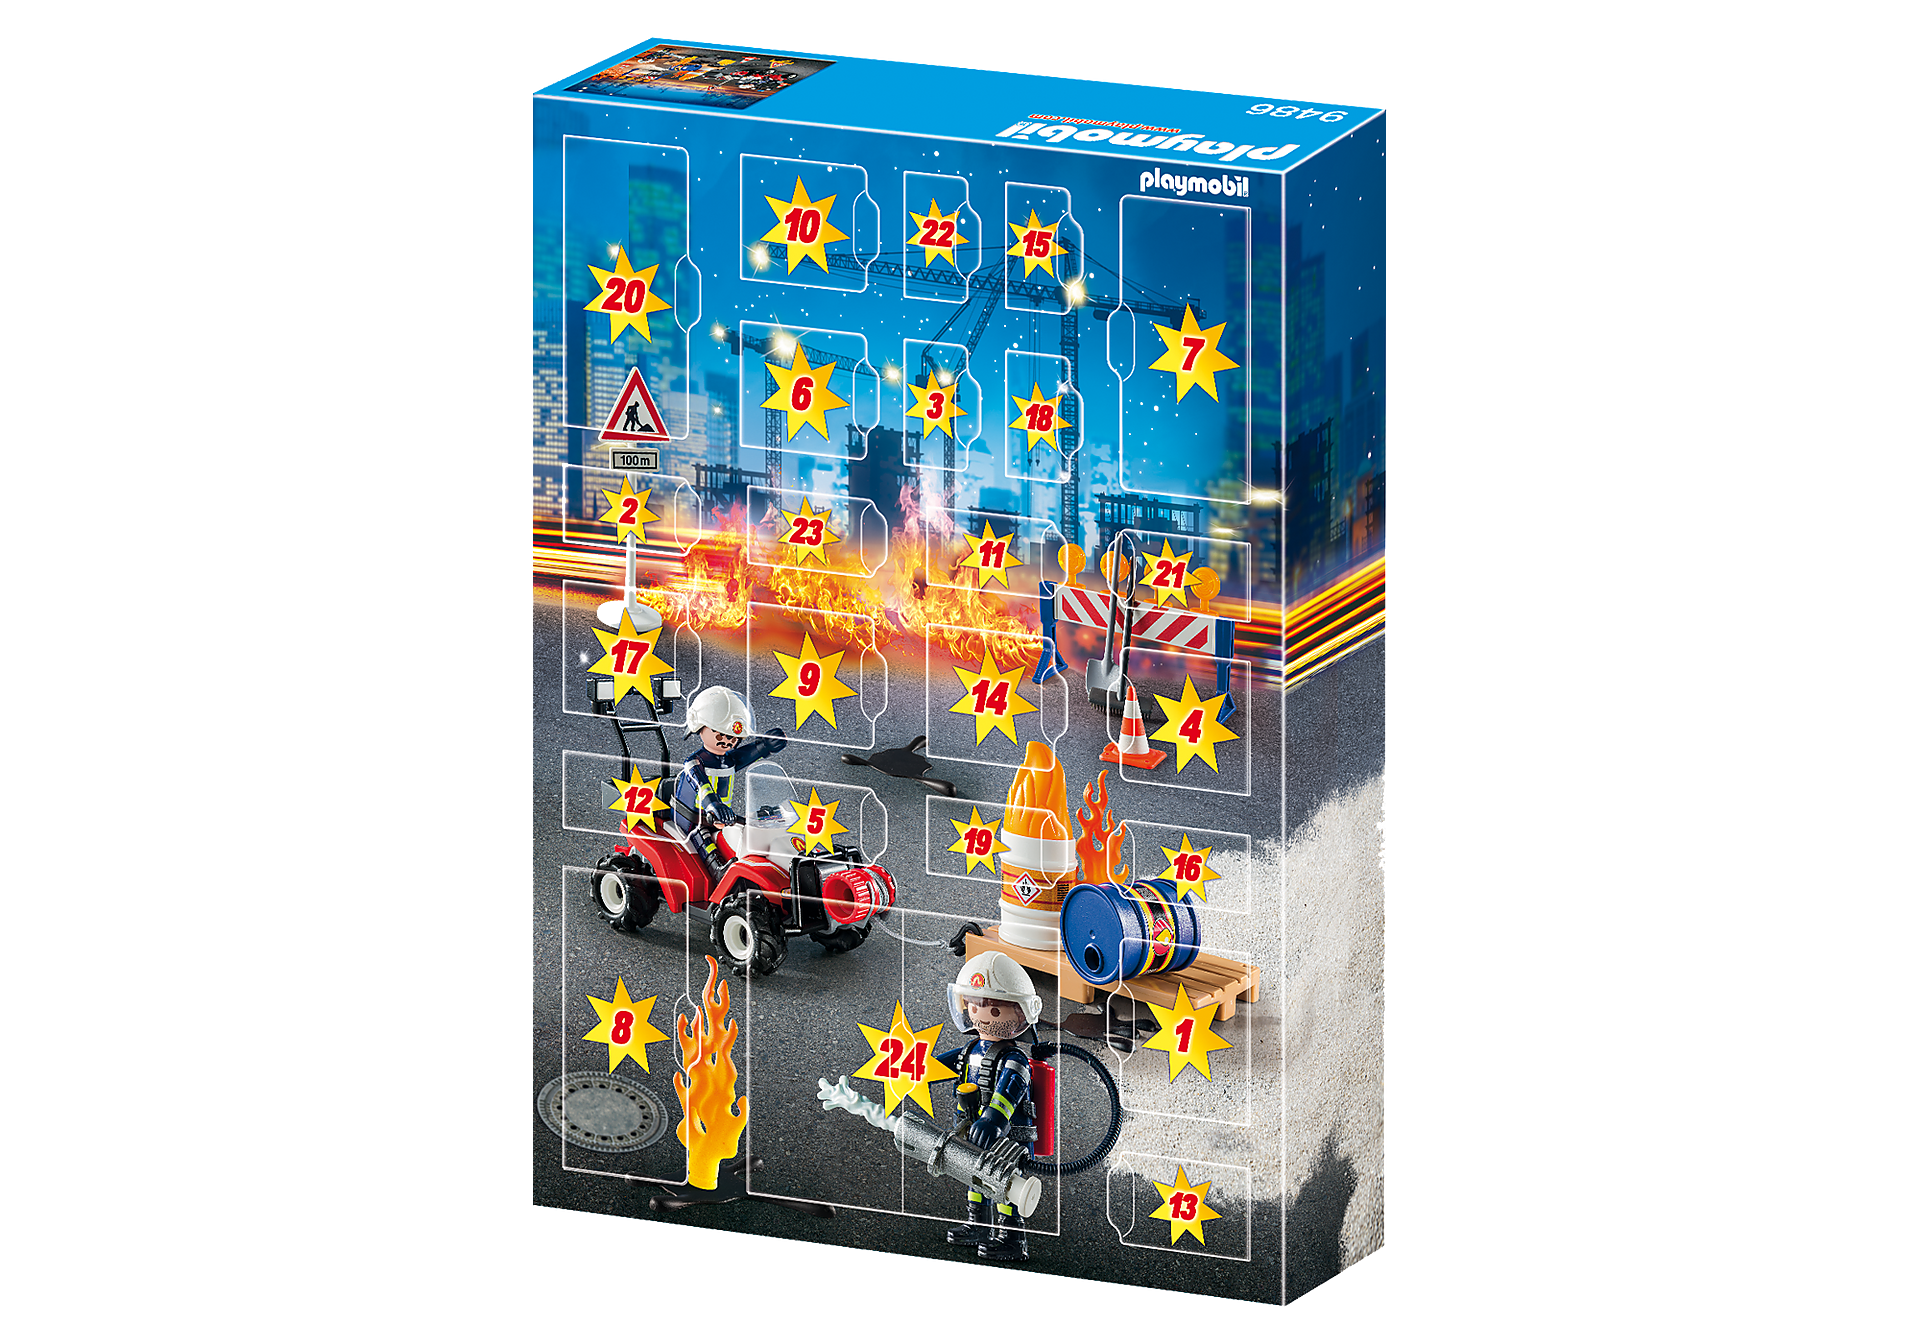 9486 Advent Calendar - Construction Site Fire Rescue zoom image4